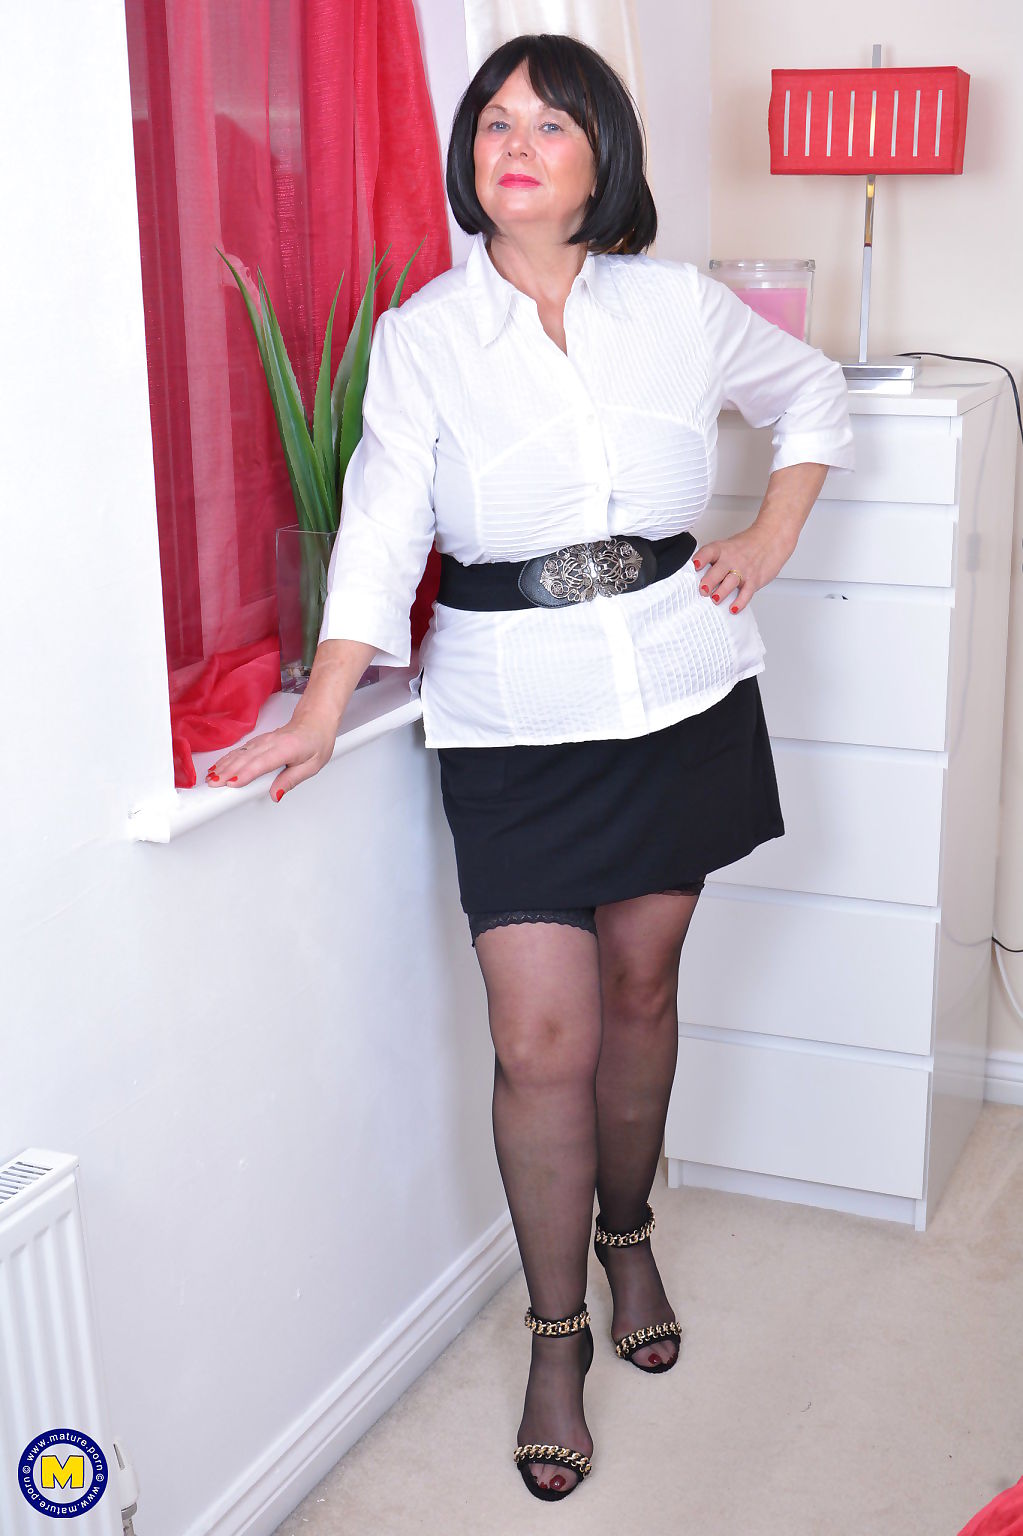 Curvy mature lady from the uk playing with herself - part 2022